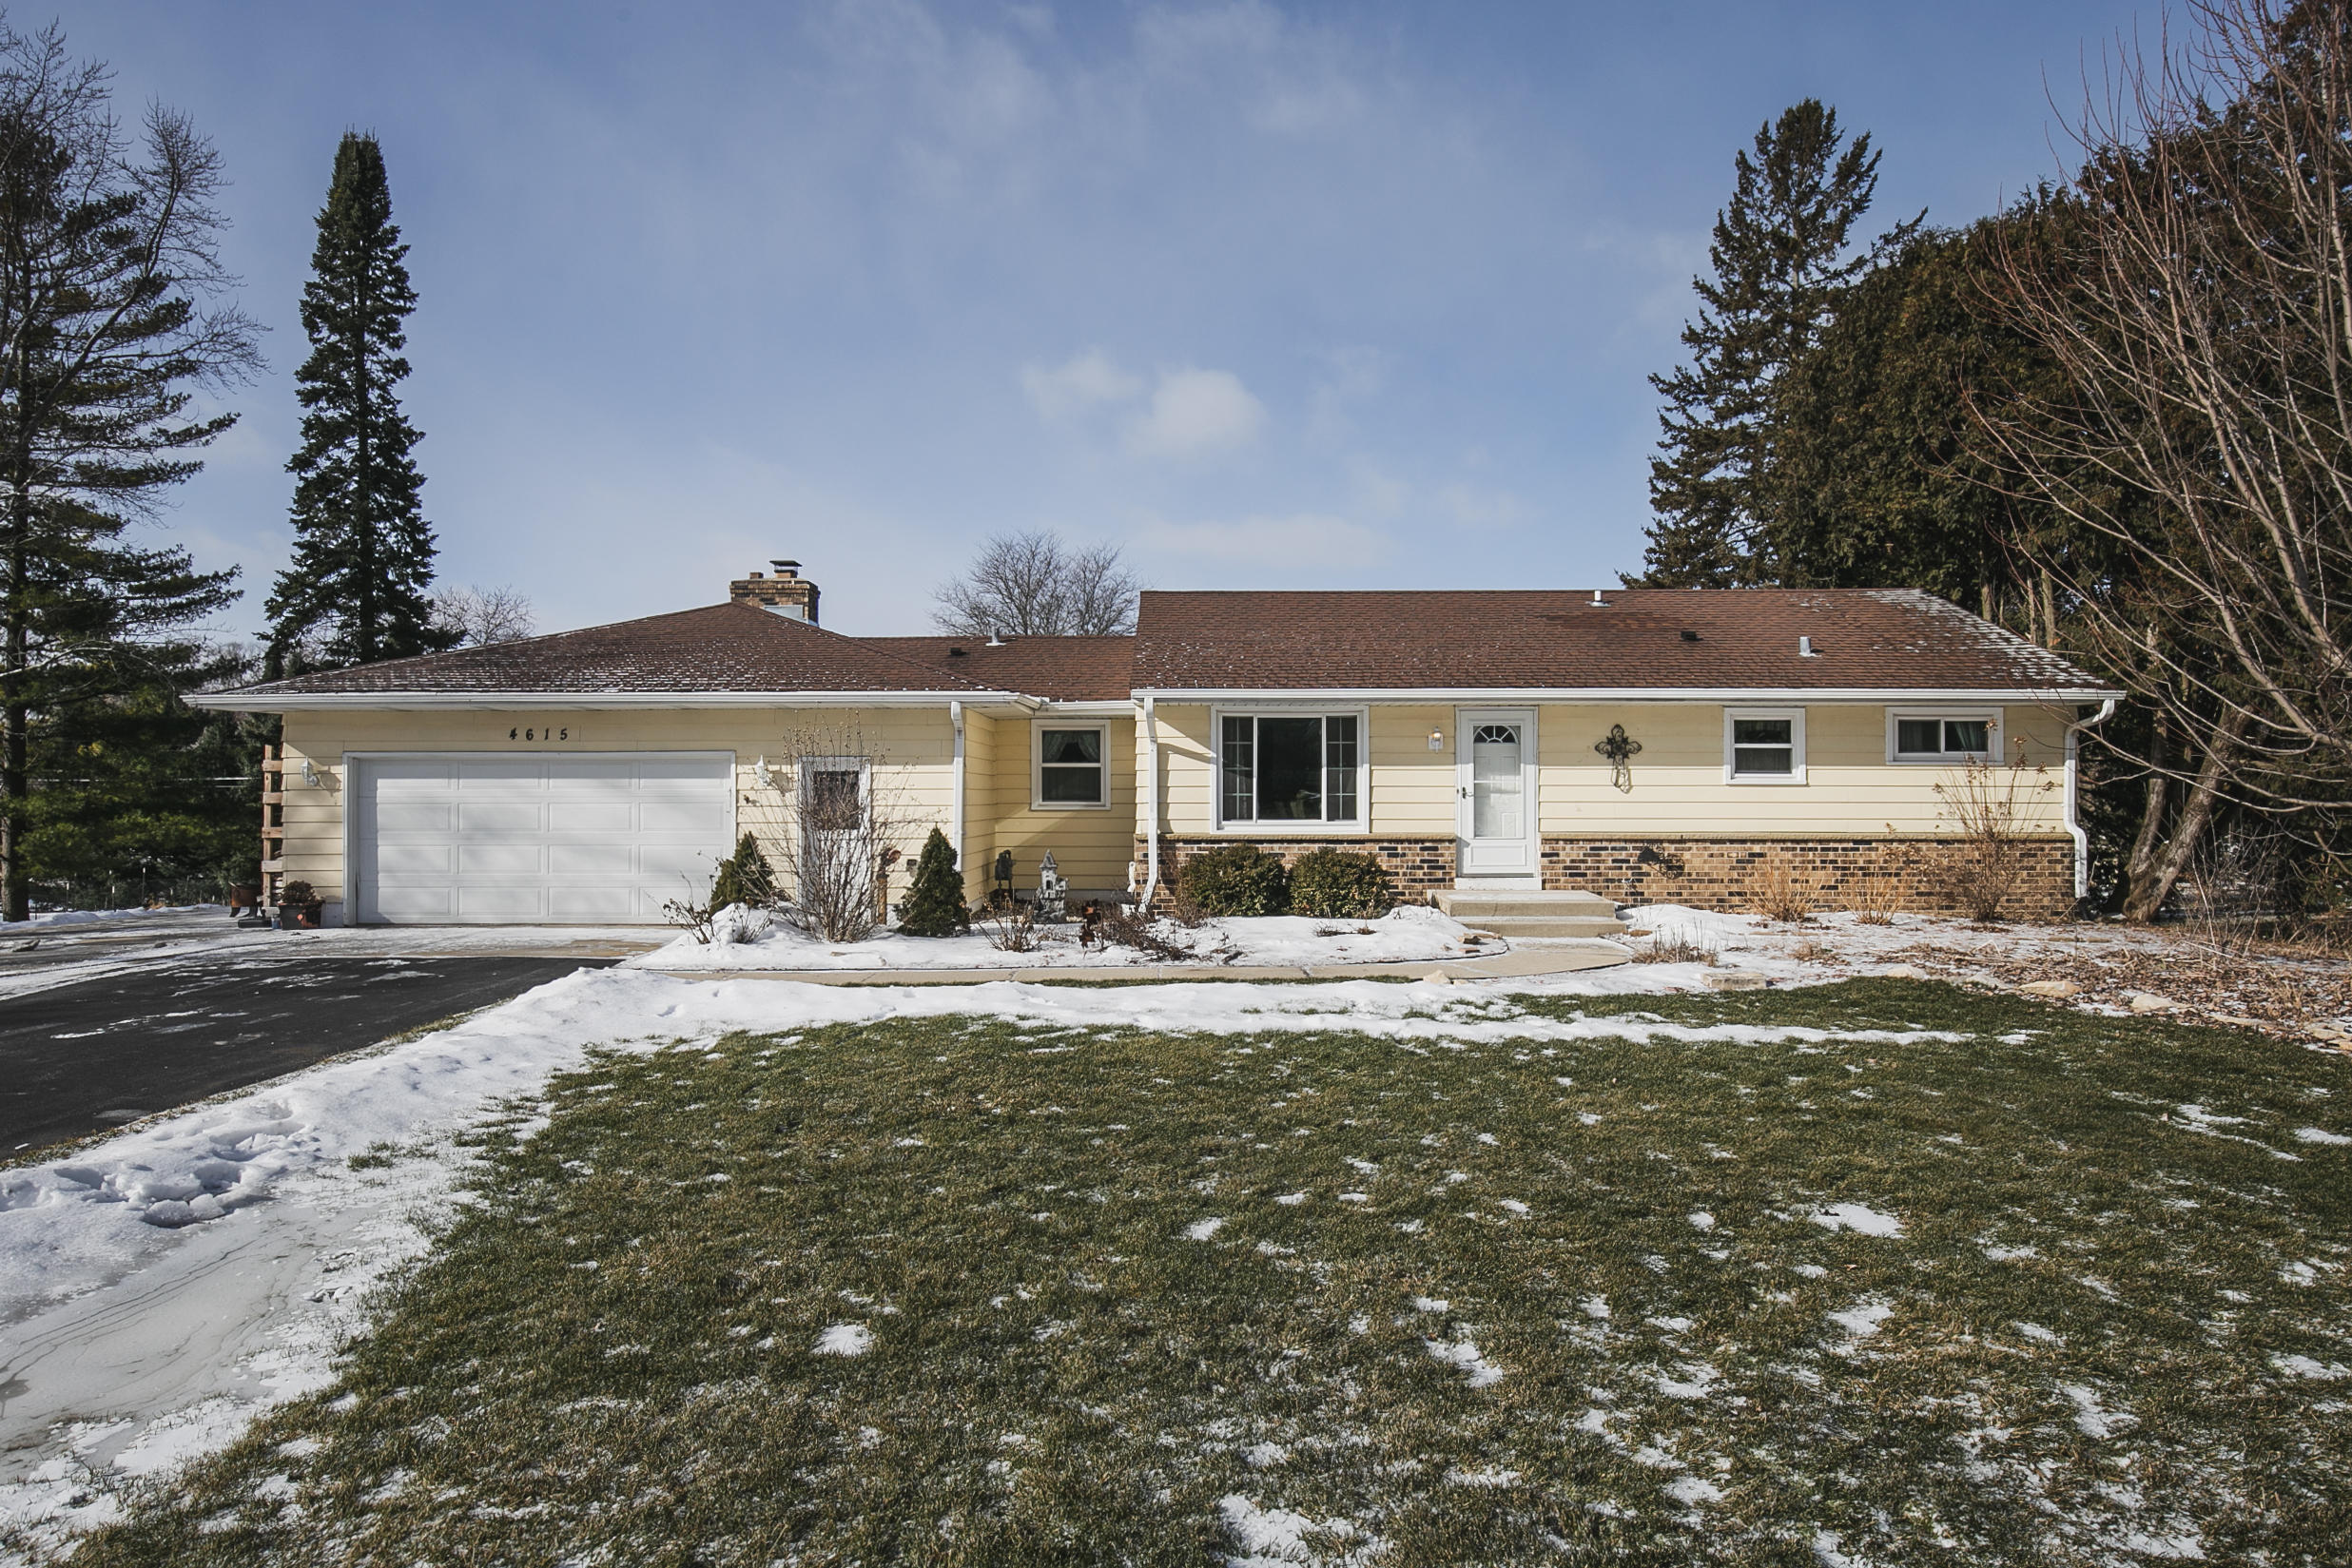 4615 149th St, Brookfield, Wisconsin 53005, 3 Bedrooms Bedrooms, 6 Rooms Rooms,2 BathroomsBathrooms,Single-Family,For Sale,149th St,1622636